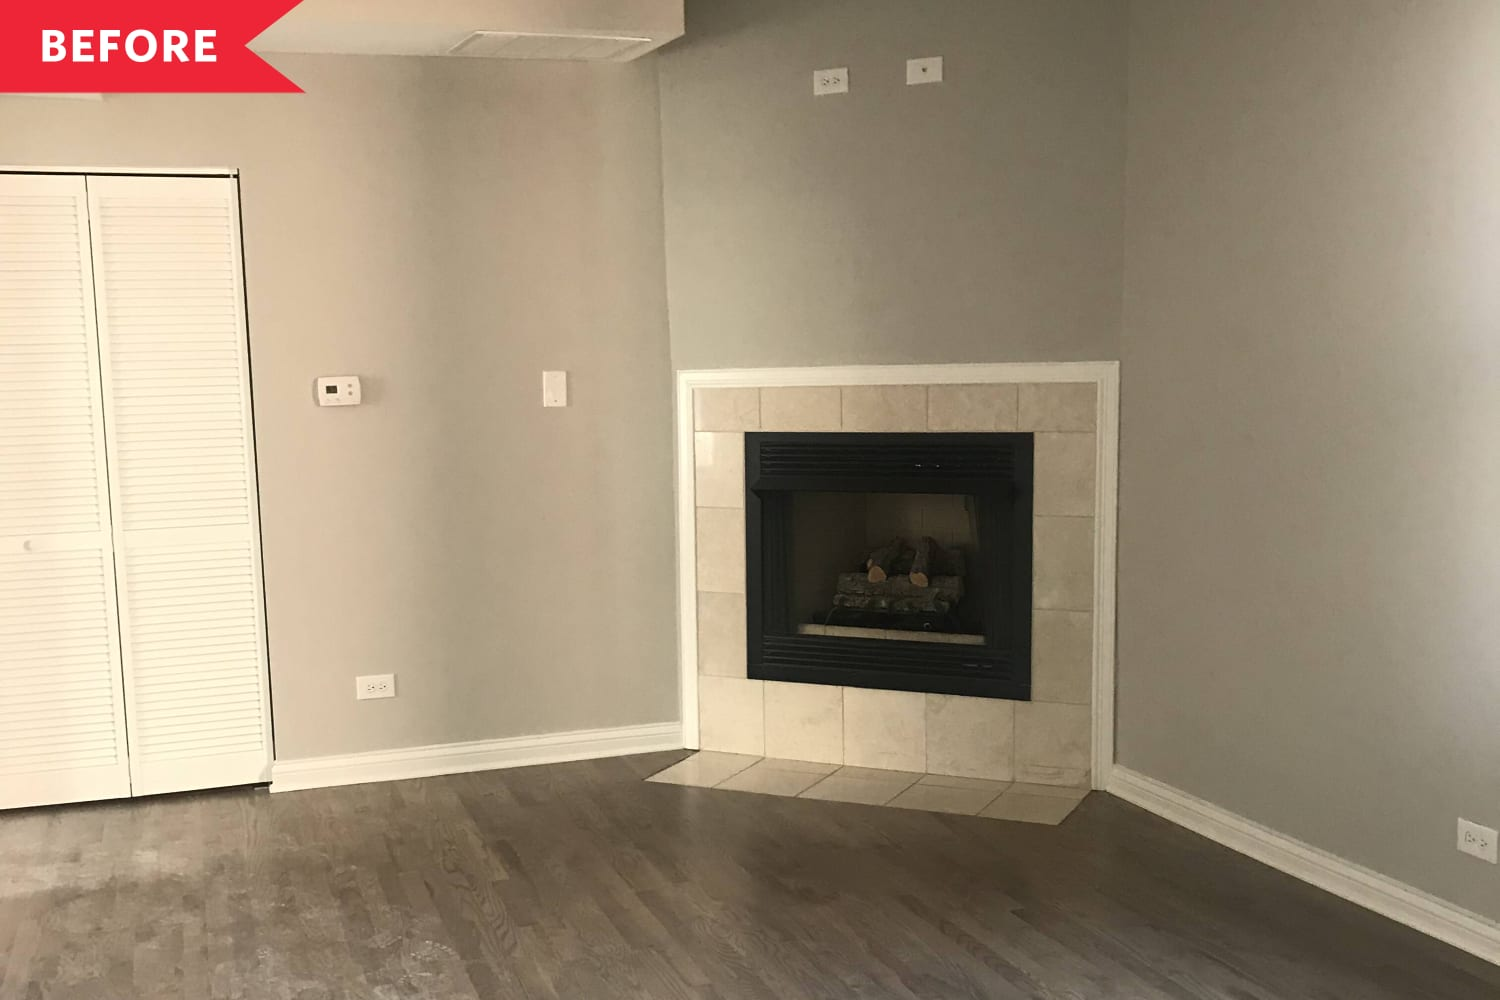 Before & After: A Boring, Bland Rental Apartment's $20 (and Temporary!) Fireplace Fix